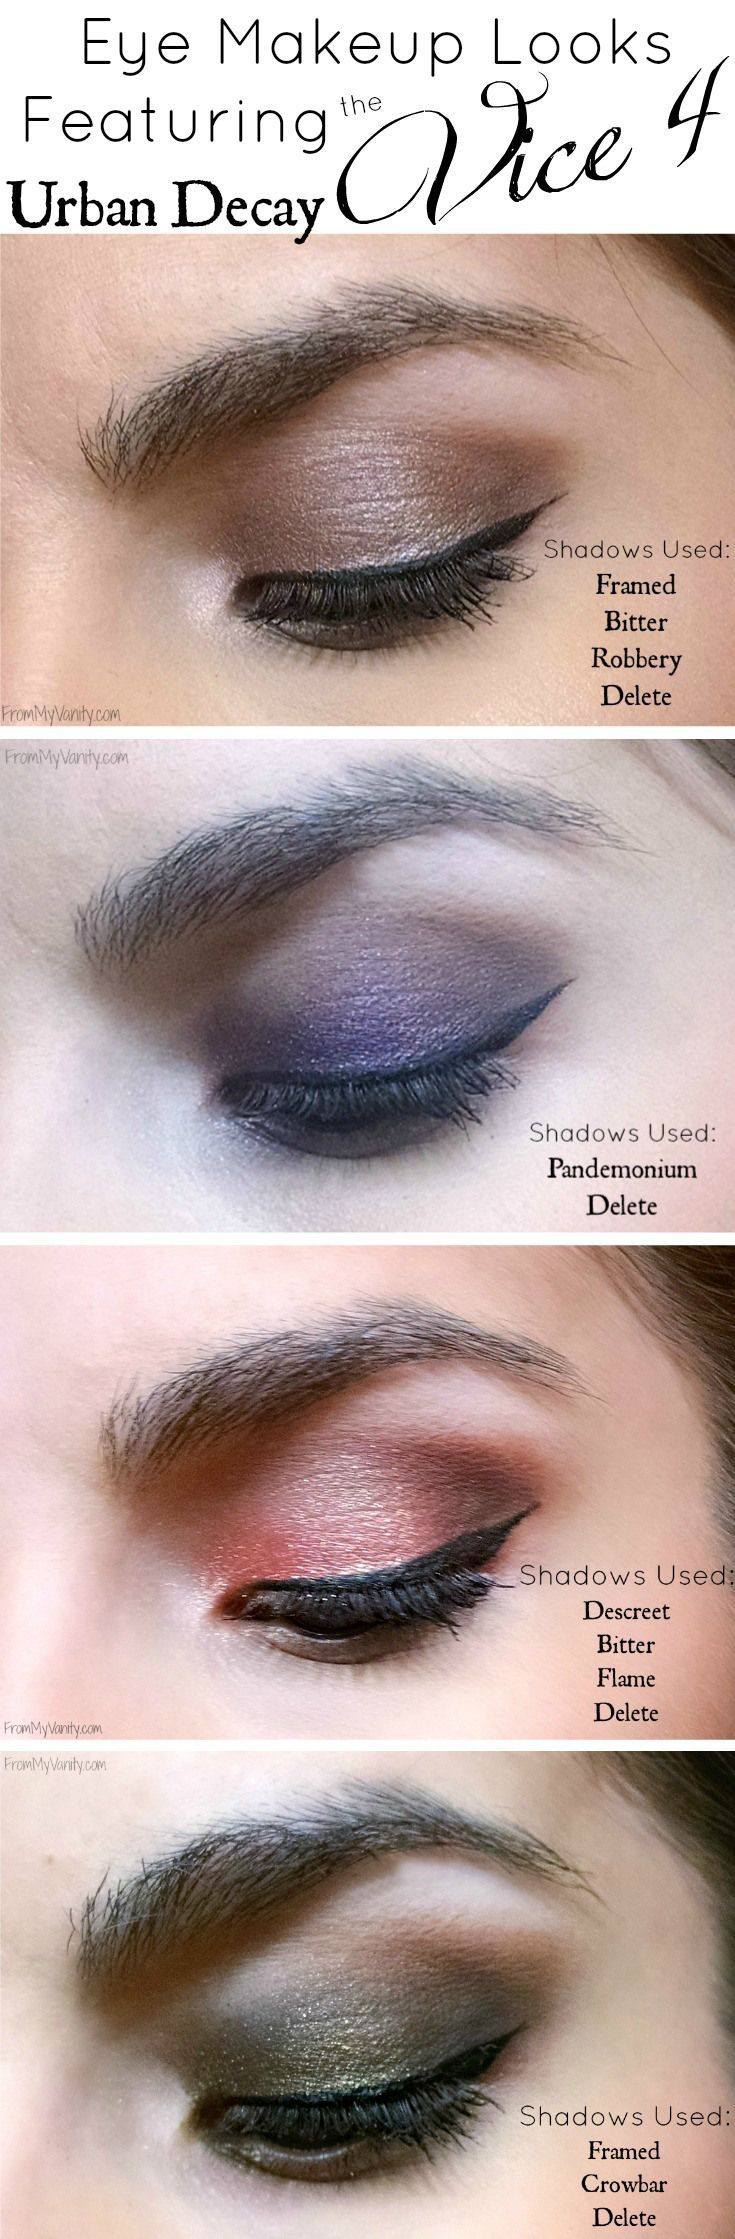 Urban Decay Vice 4 Palette // 4 Vivid Eye Makeup Looks Featuring Vice4